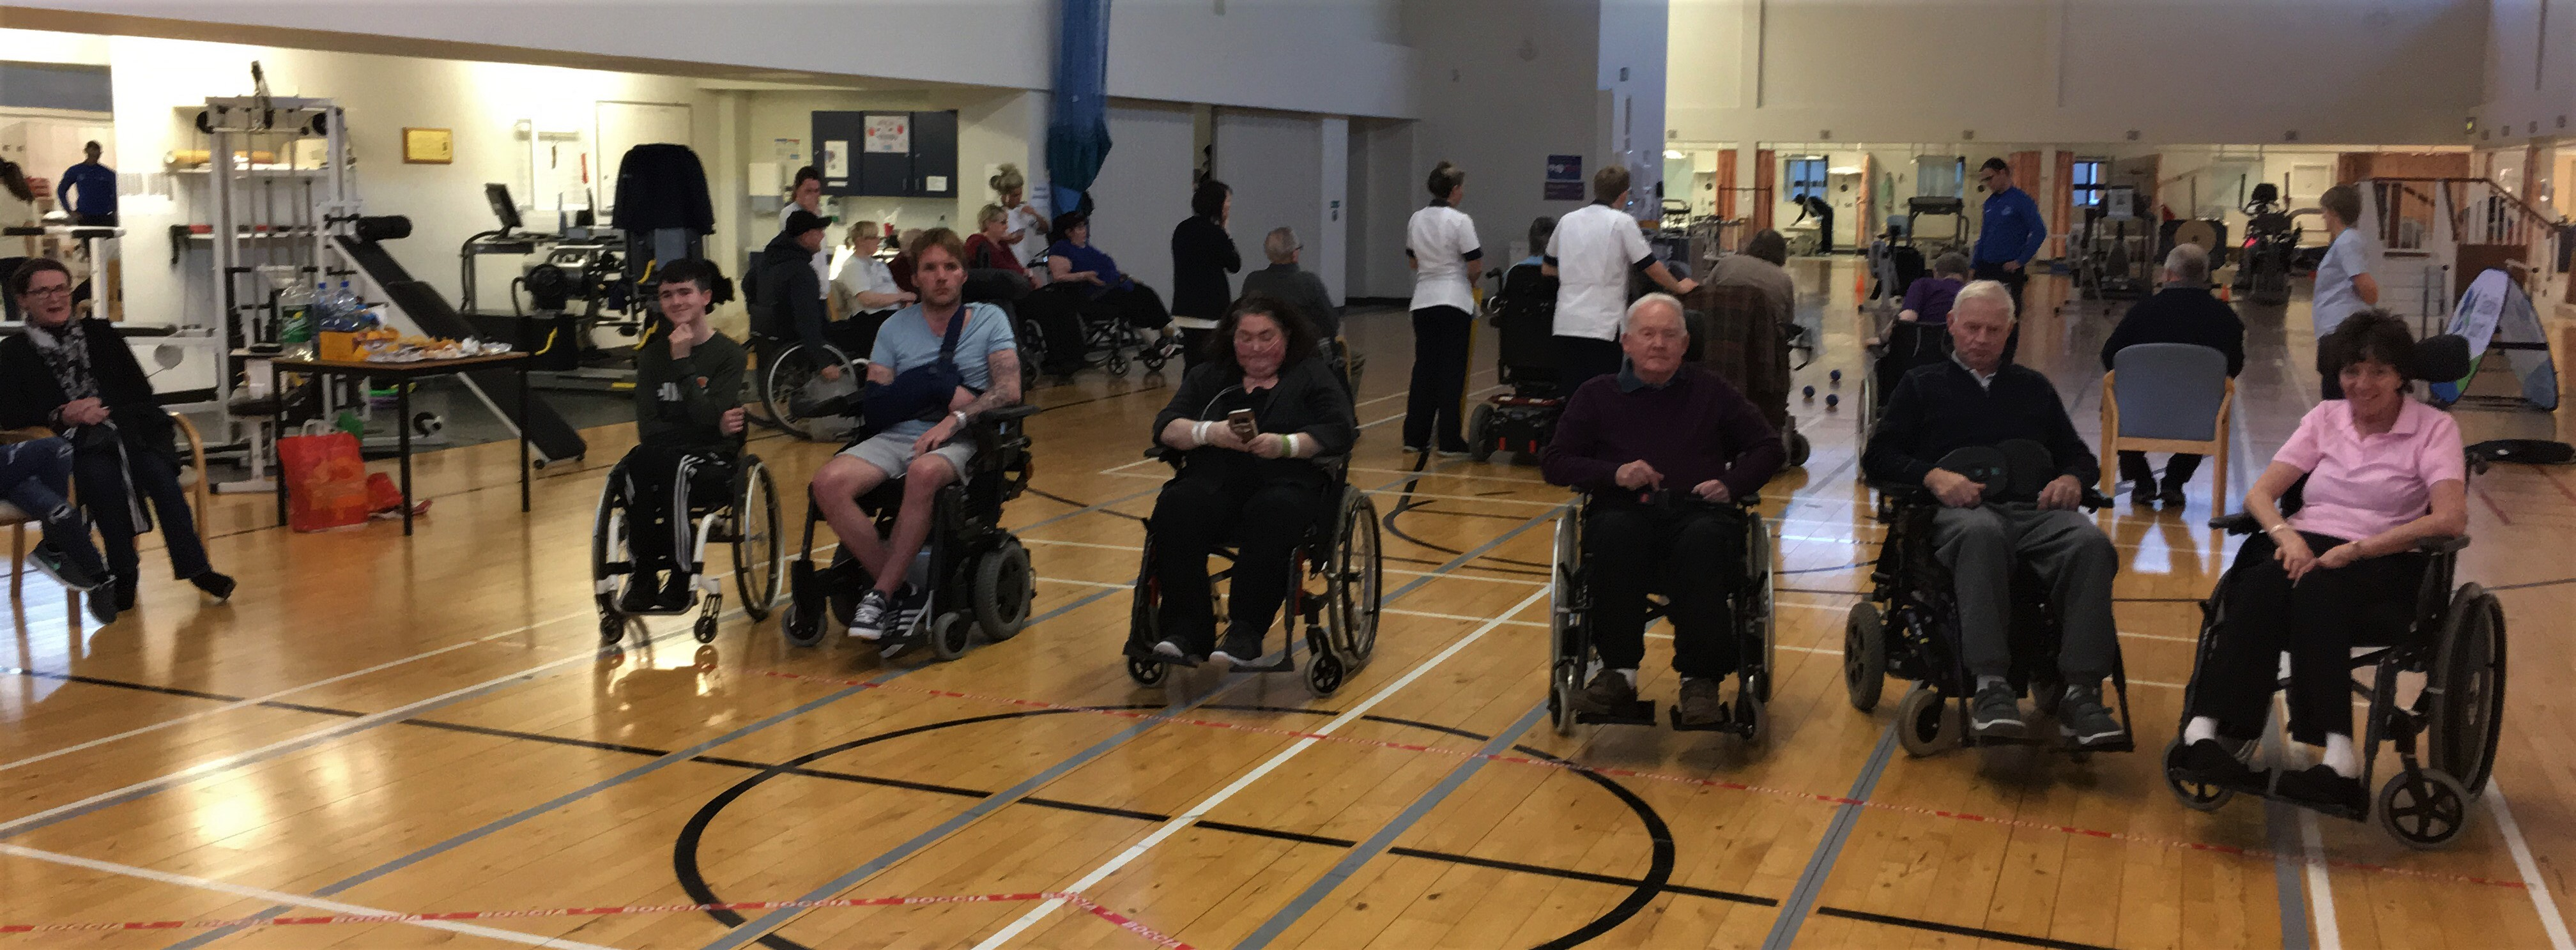 A group of people who are wheelchair users lined up to play boccia